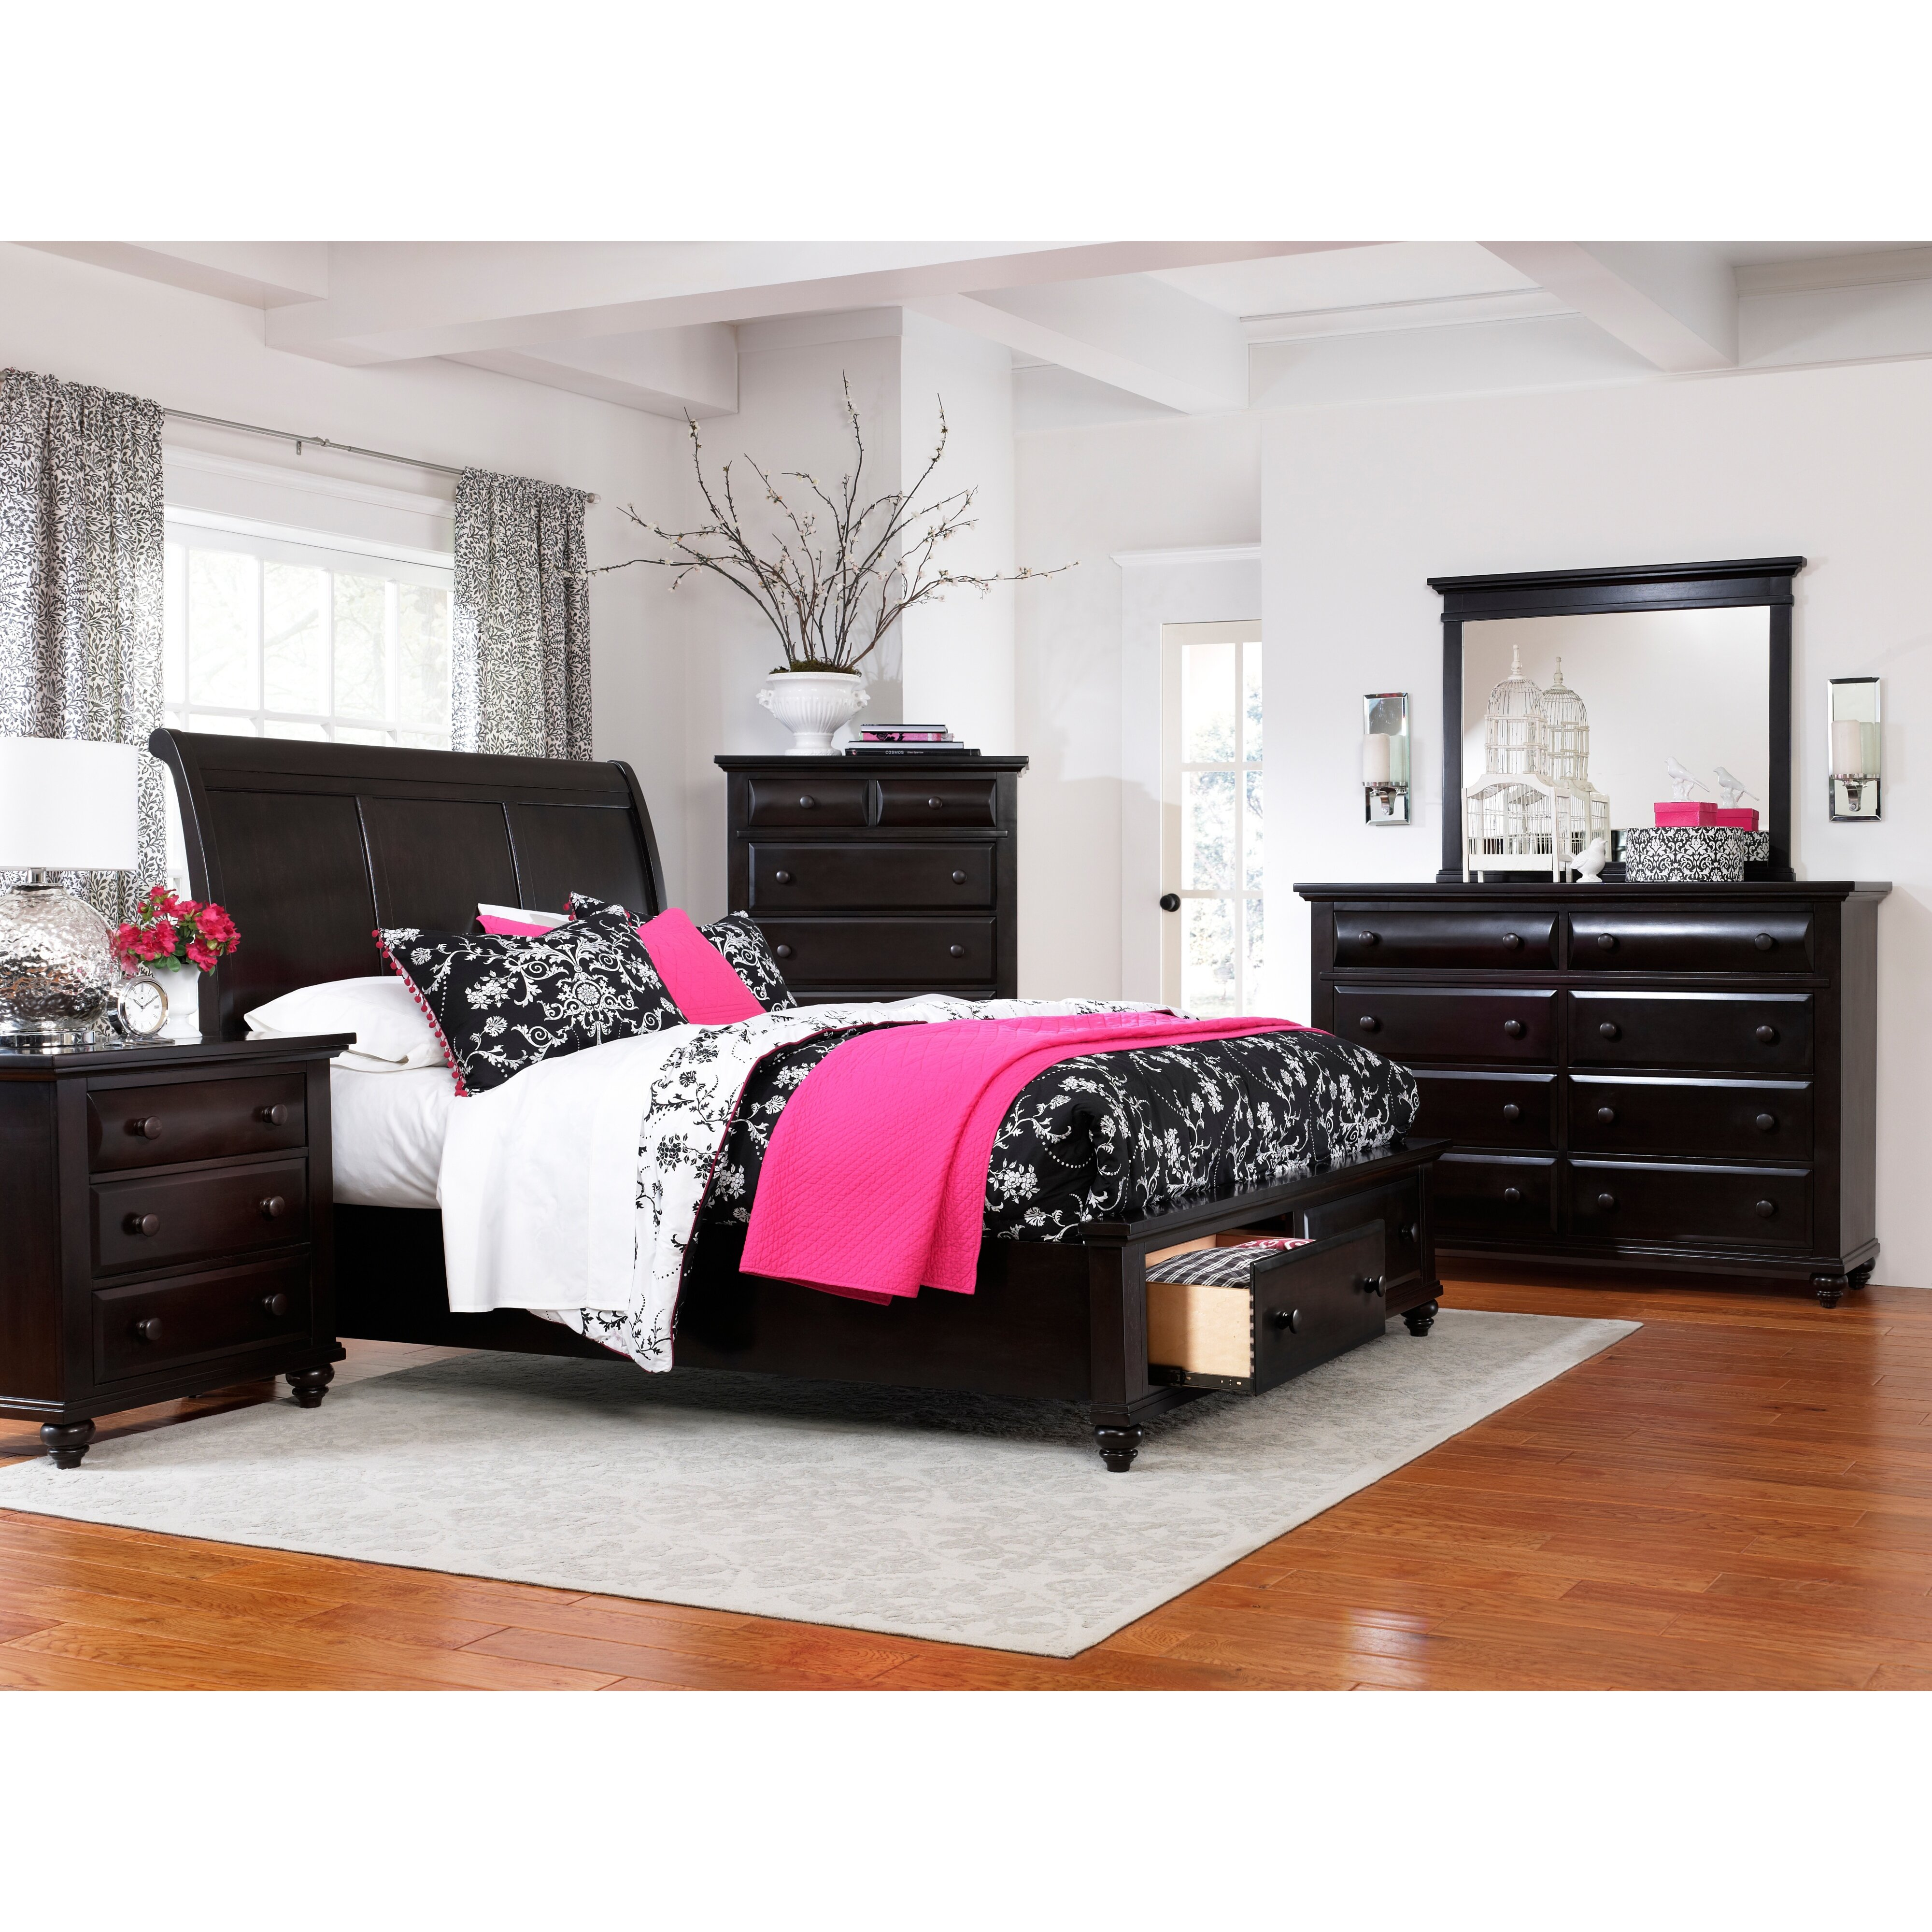 Broyhill Bedroom Furniture Reviews Diy Bedroom Art Canopy Bedroom Sets King Size Navy And Black Bedroom: Broyhill® Farnsworth 8 Drawer Dresser & Reviews